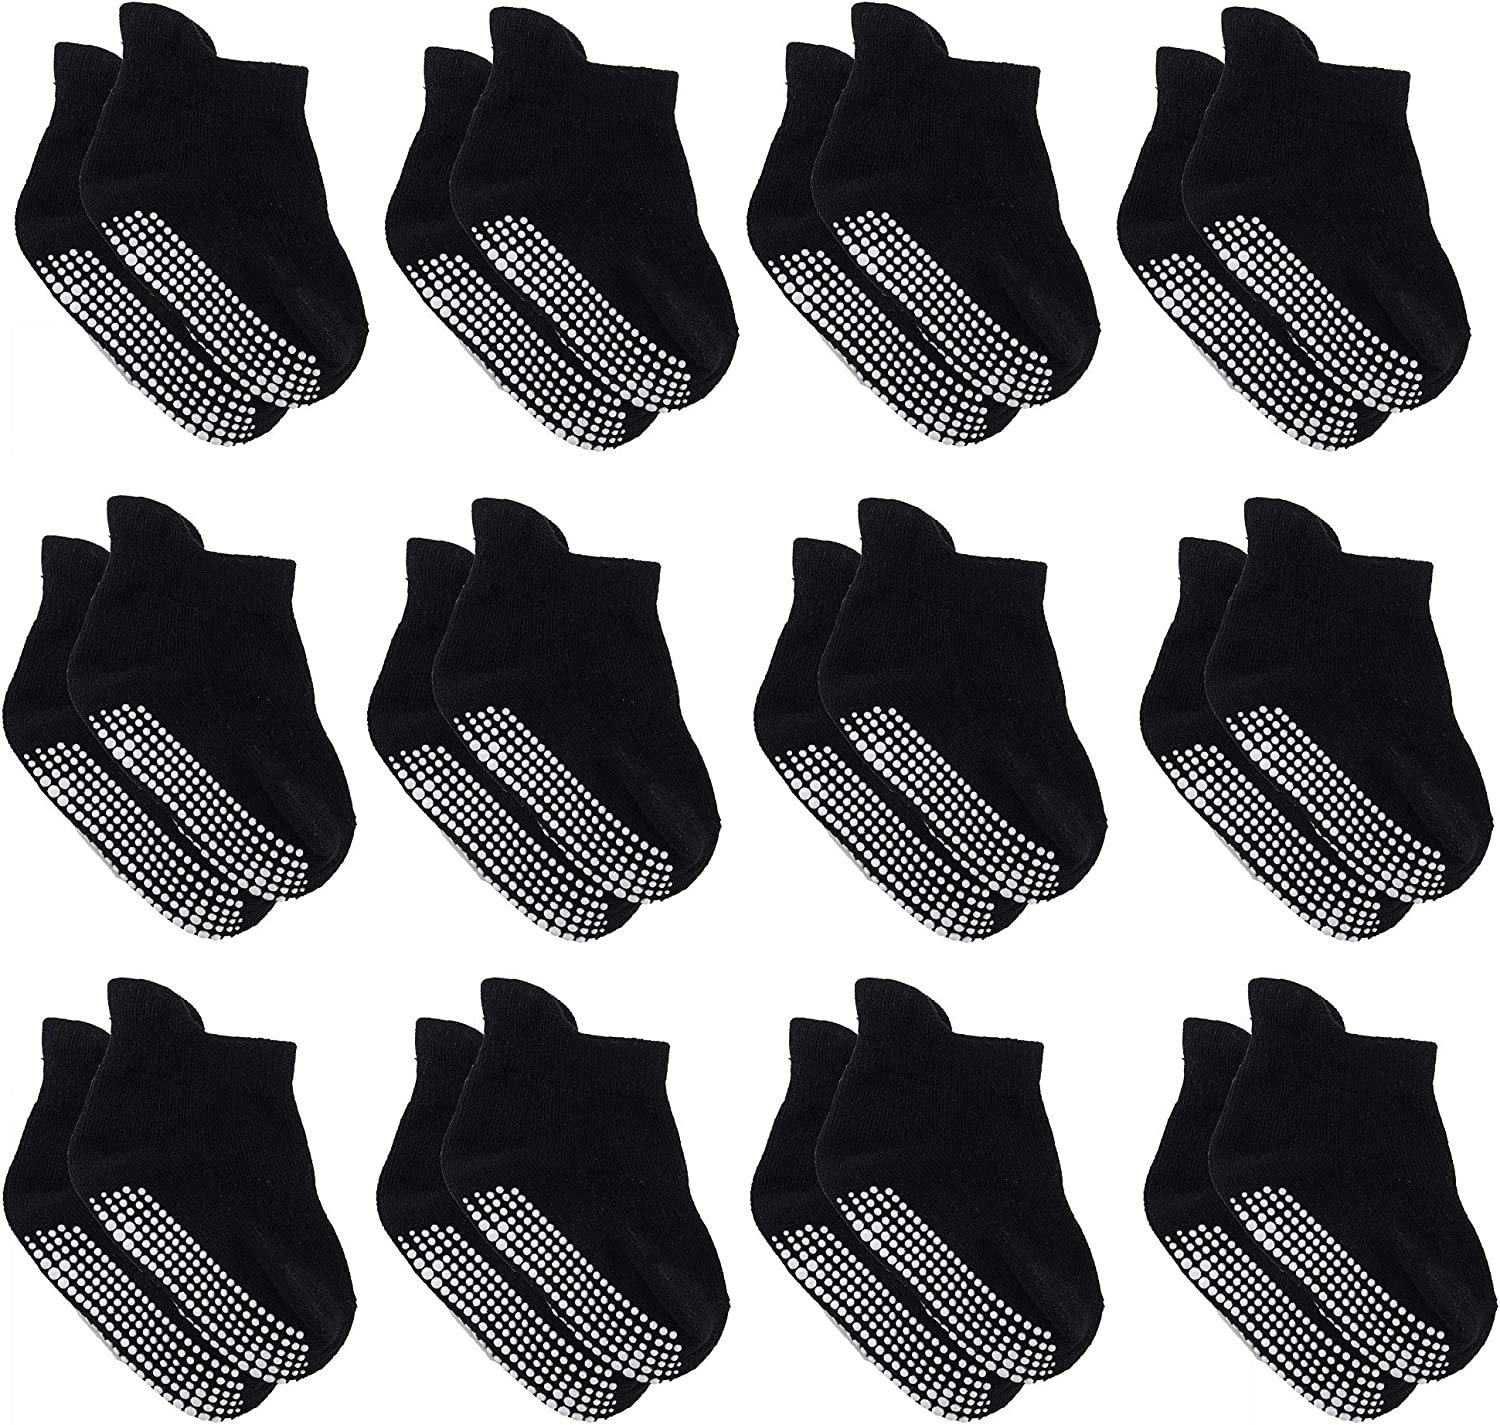 Dicry Baby Ankle Socks with Grips Toddler Girls Boys Non Slip//Anti Skid Socks for Infant Kids 6//12 Pairs